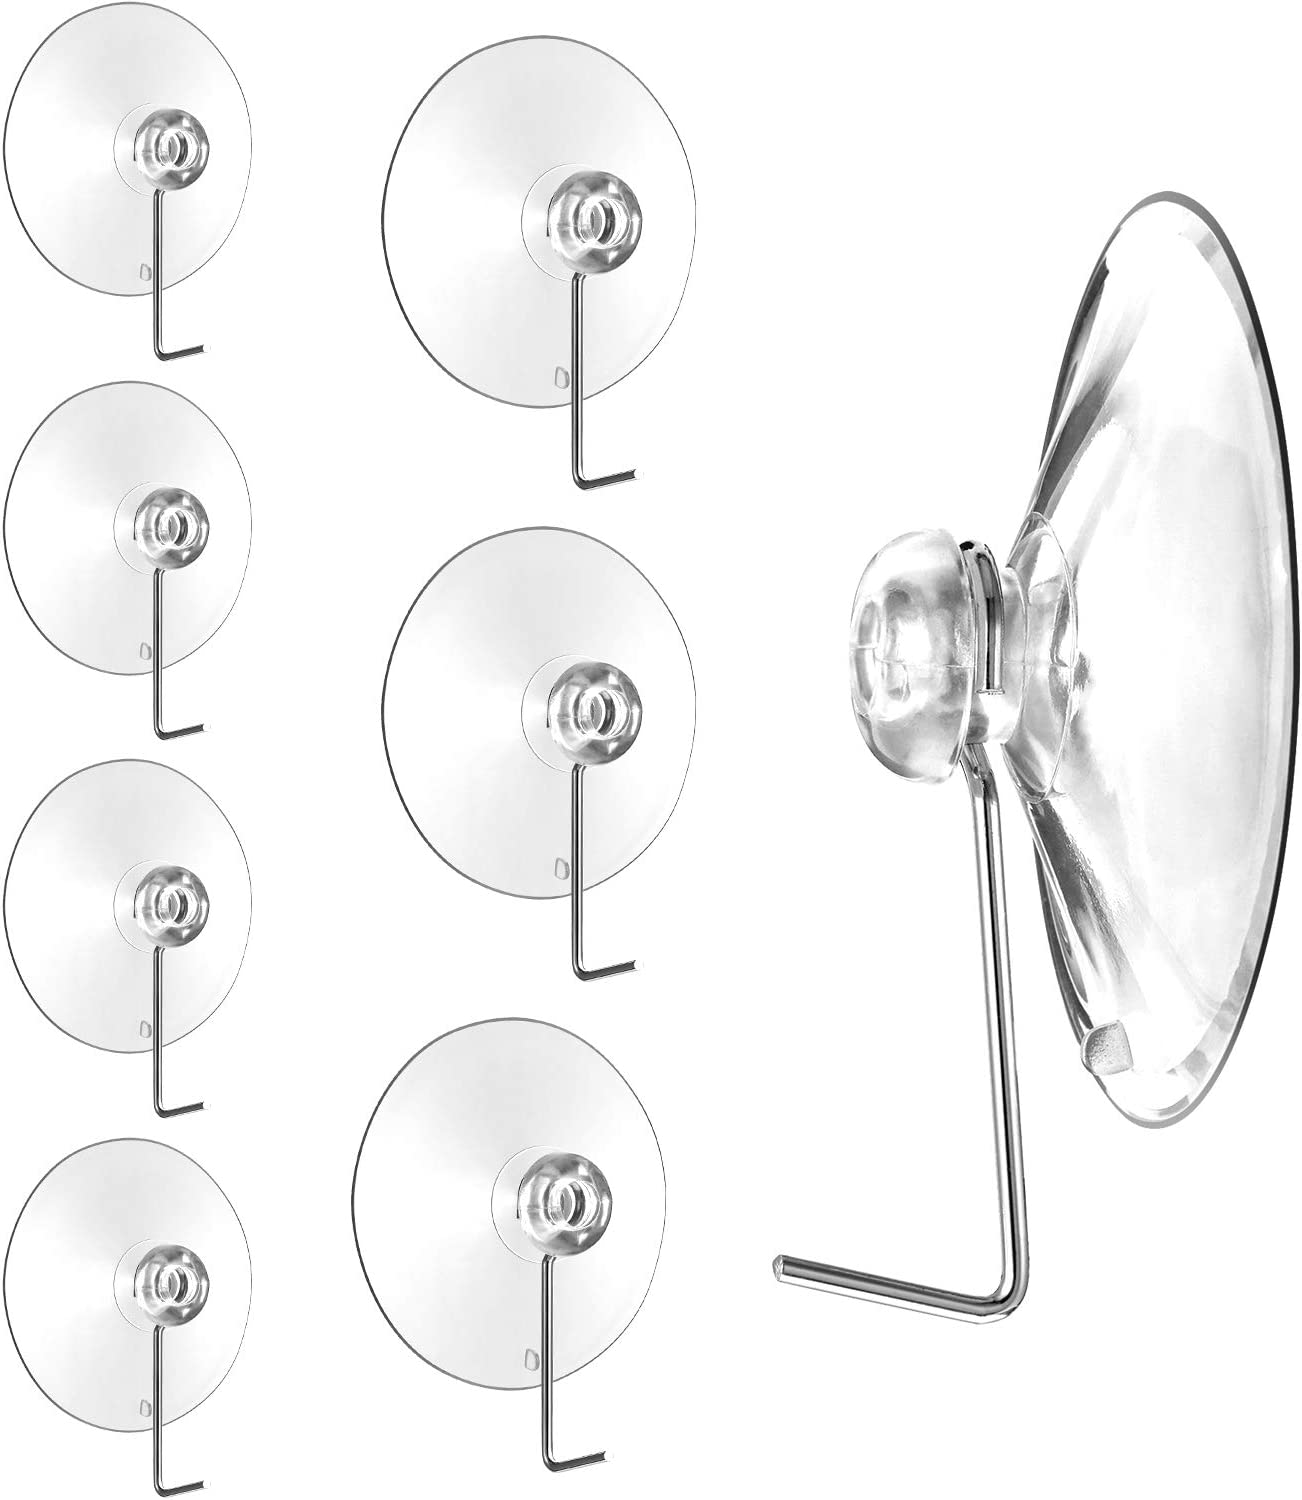 Mudder 24 Pieces Bathroom Kitchen Suction Cup Wall Hooks Hangers (30 mm/45 mm/63 mm, Metal Hook)